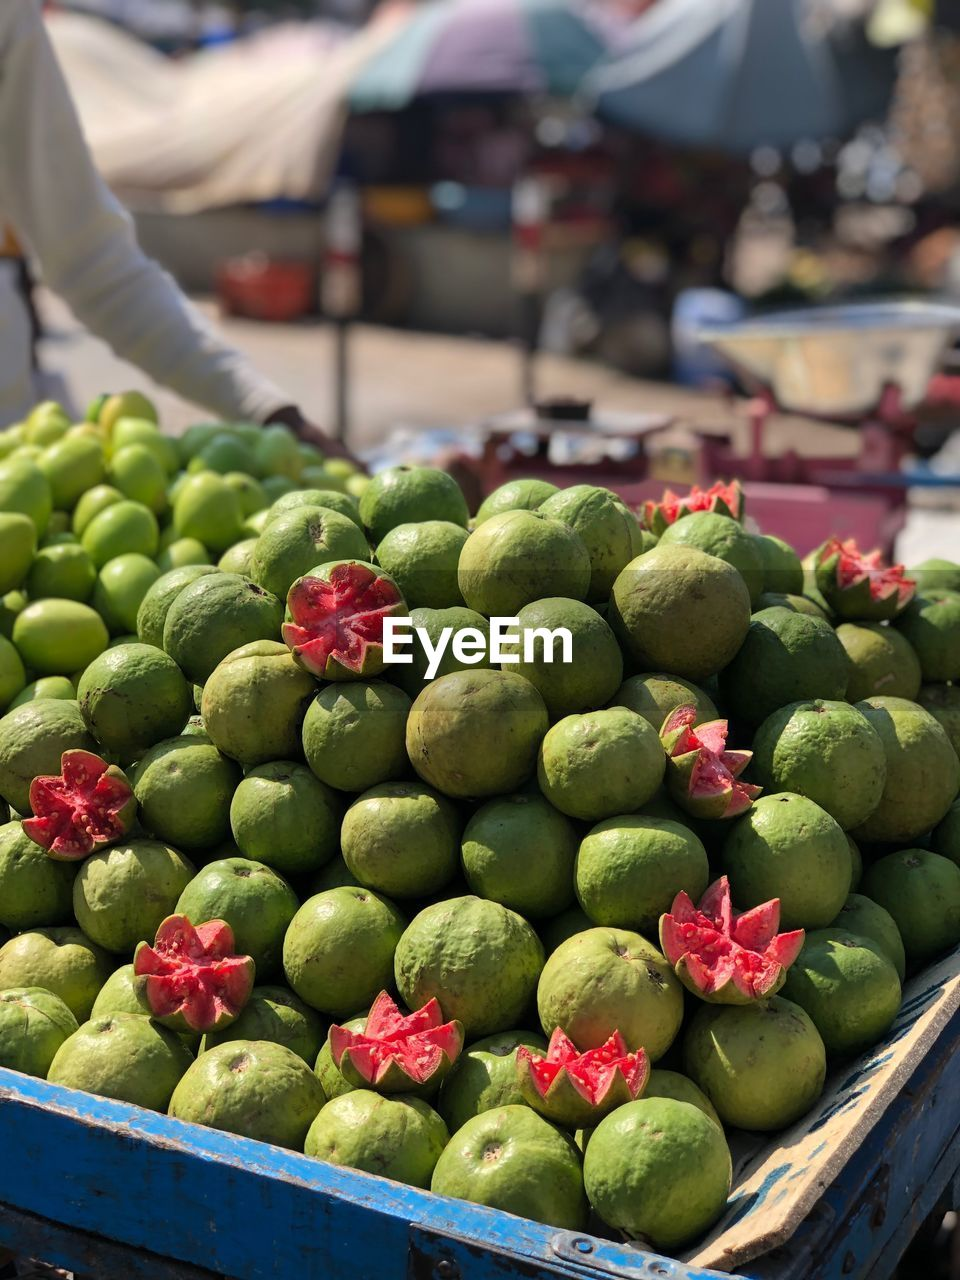 food and drink, healthy eating, food, market, freshness, wellbeing, market stall, retail, large group of objects, abundance, green color, for sale, fruit, choice, day, vegetable, small business, incidental people, outdoors, close-up, retail display, sale, street market, ripe